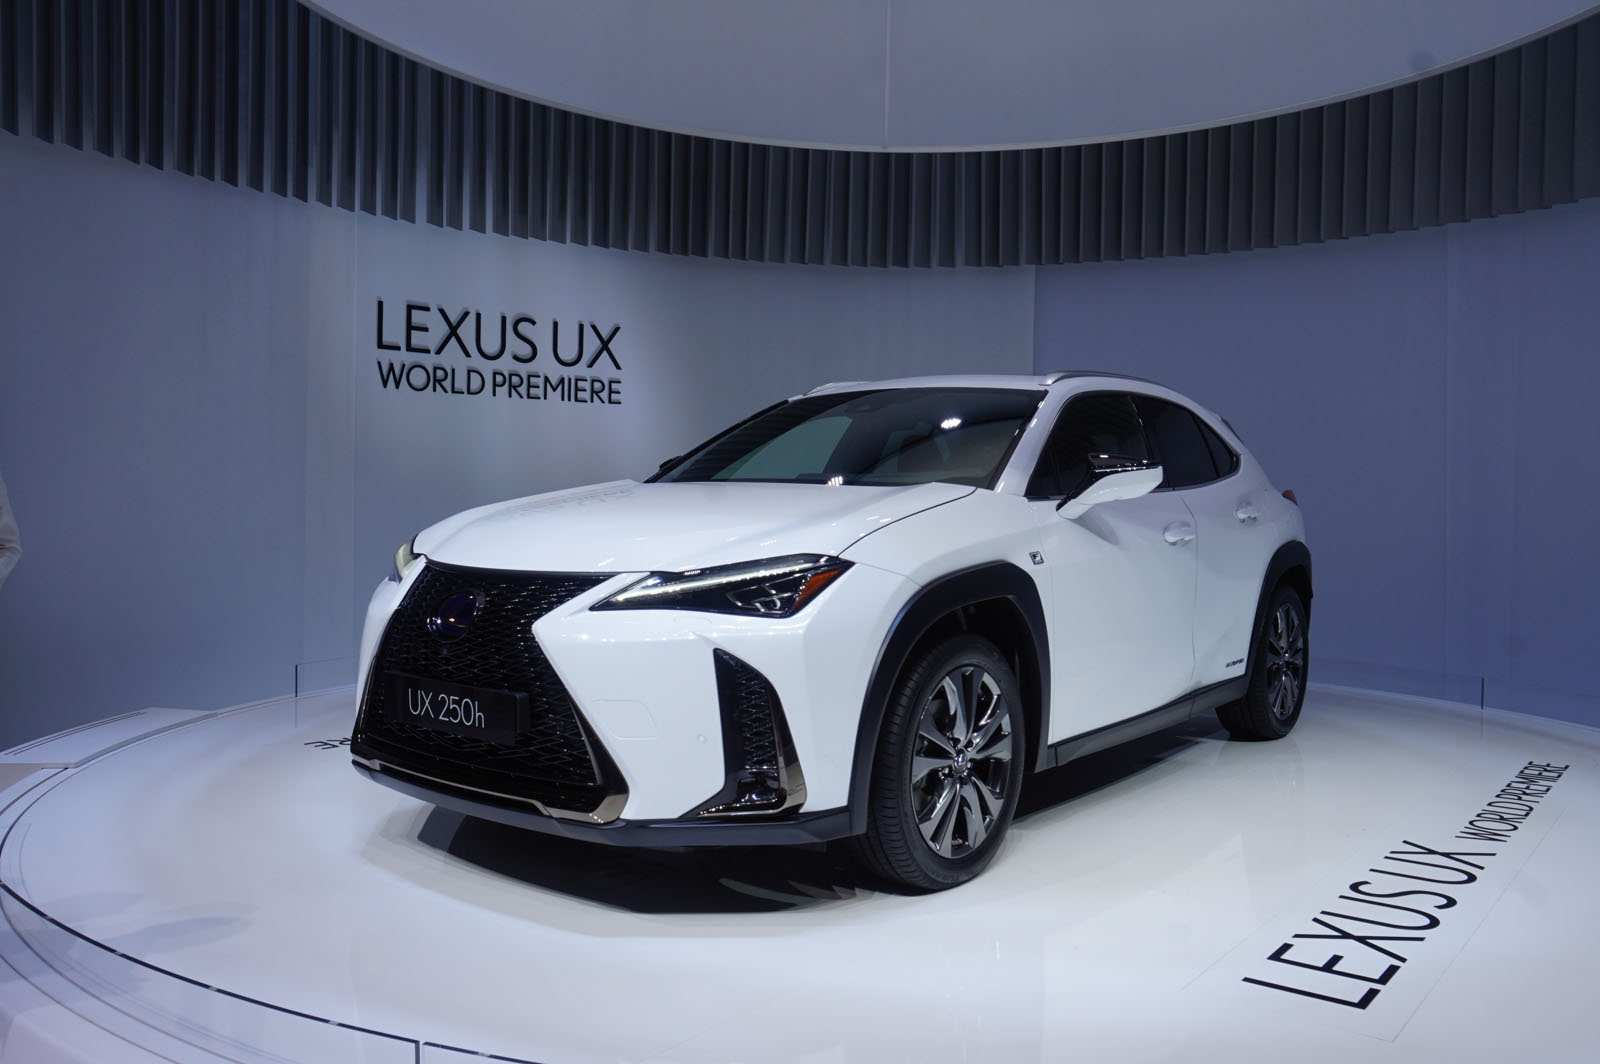 25 Great Lexus Ux 2019 Price 2 Interior by Lexus Ux 2019 Price 2